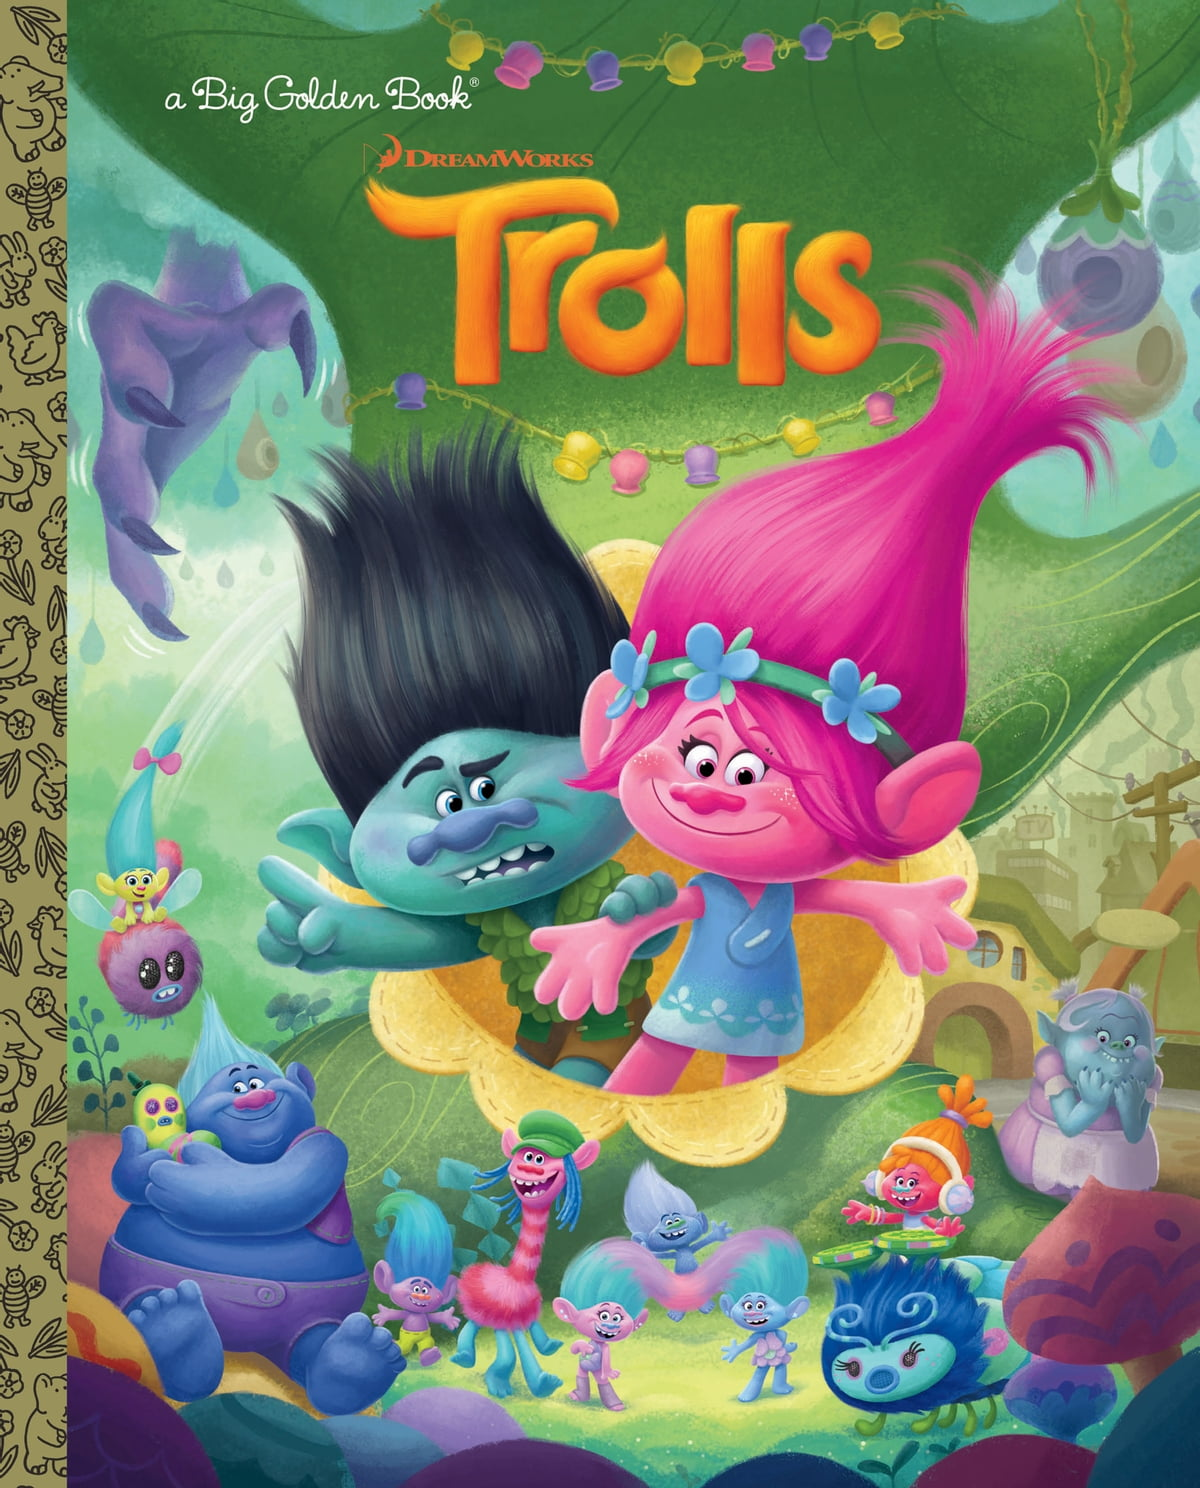 Trolls Big Golden Book (dreamworks Trolls) Ebook By Golden Books   9780399558962  Rakuten Kobo